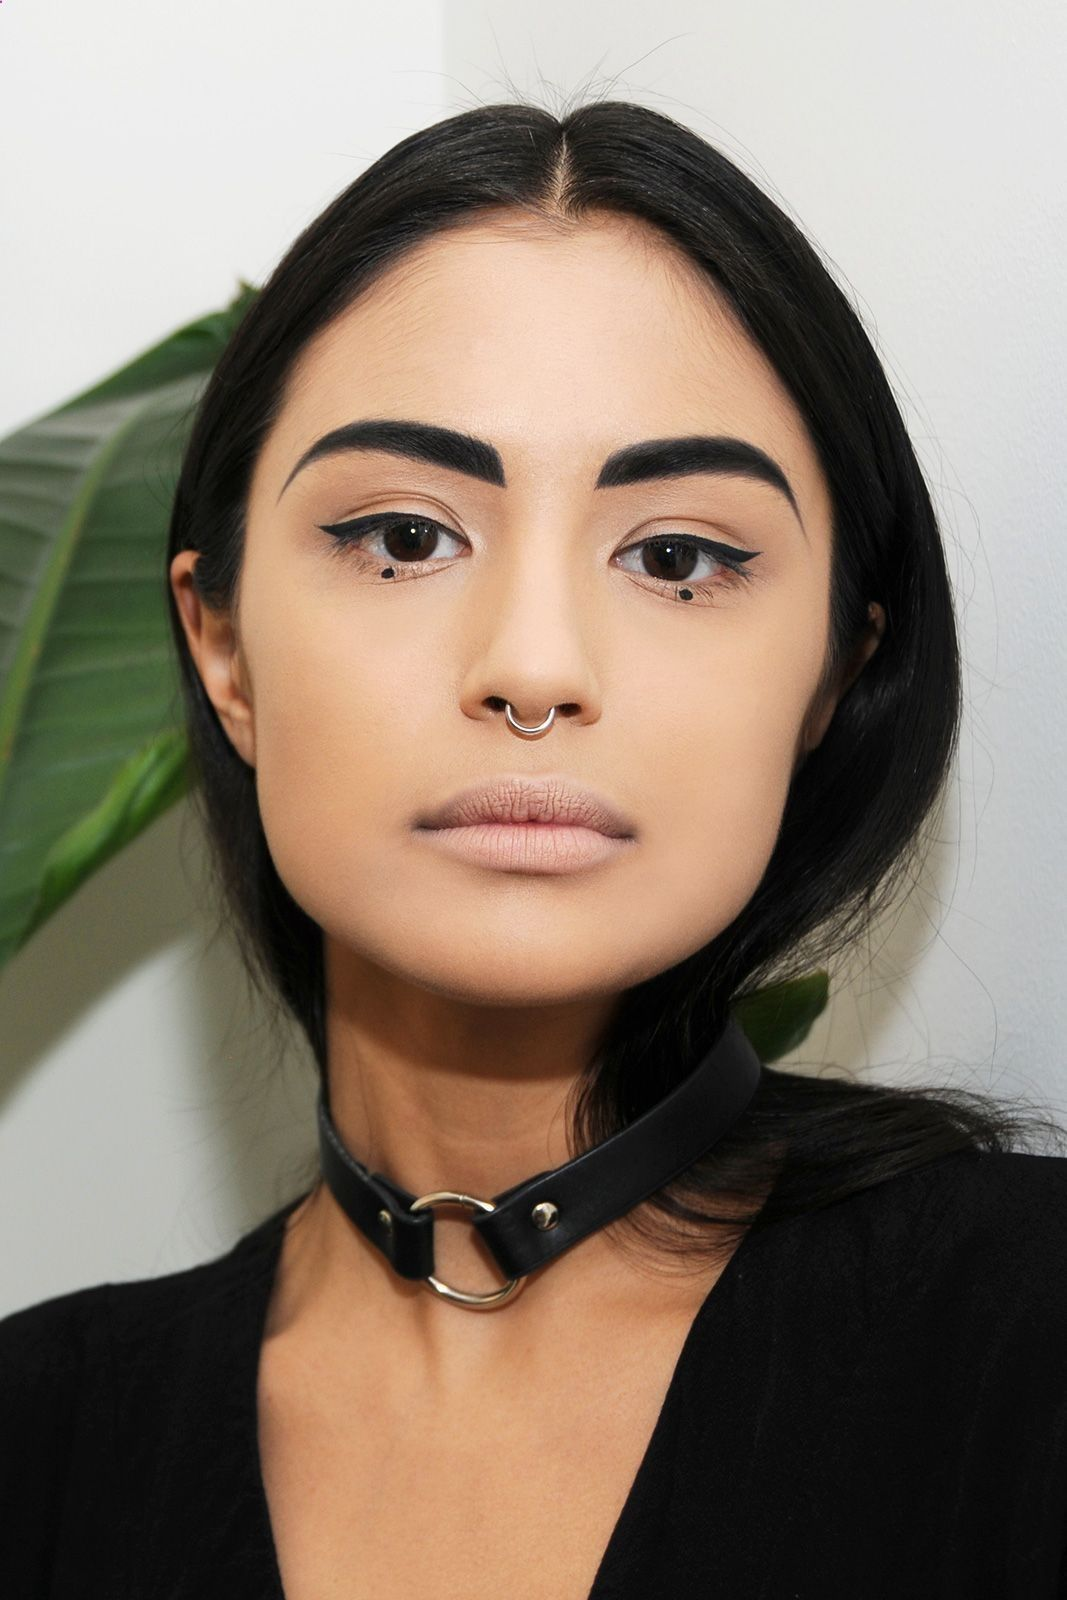 Why I M Not Ashamed Of My High Maintenance Makeup Routine Refinery29 Www Refinery29 Co On Days When I Fancy Mi Gothic Makeup Thick Eyeliner Power Of Makeup